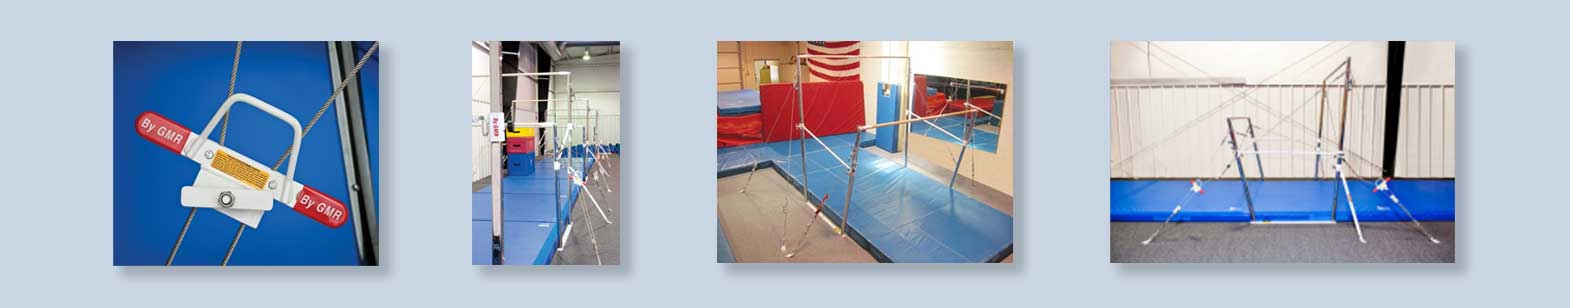 Uneven Bars - ByGMR Equipment